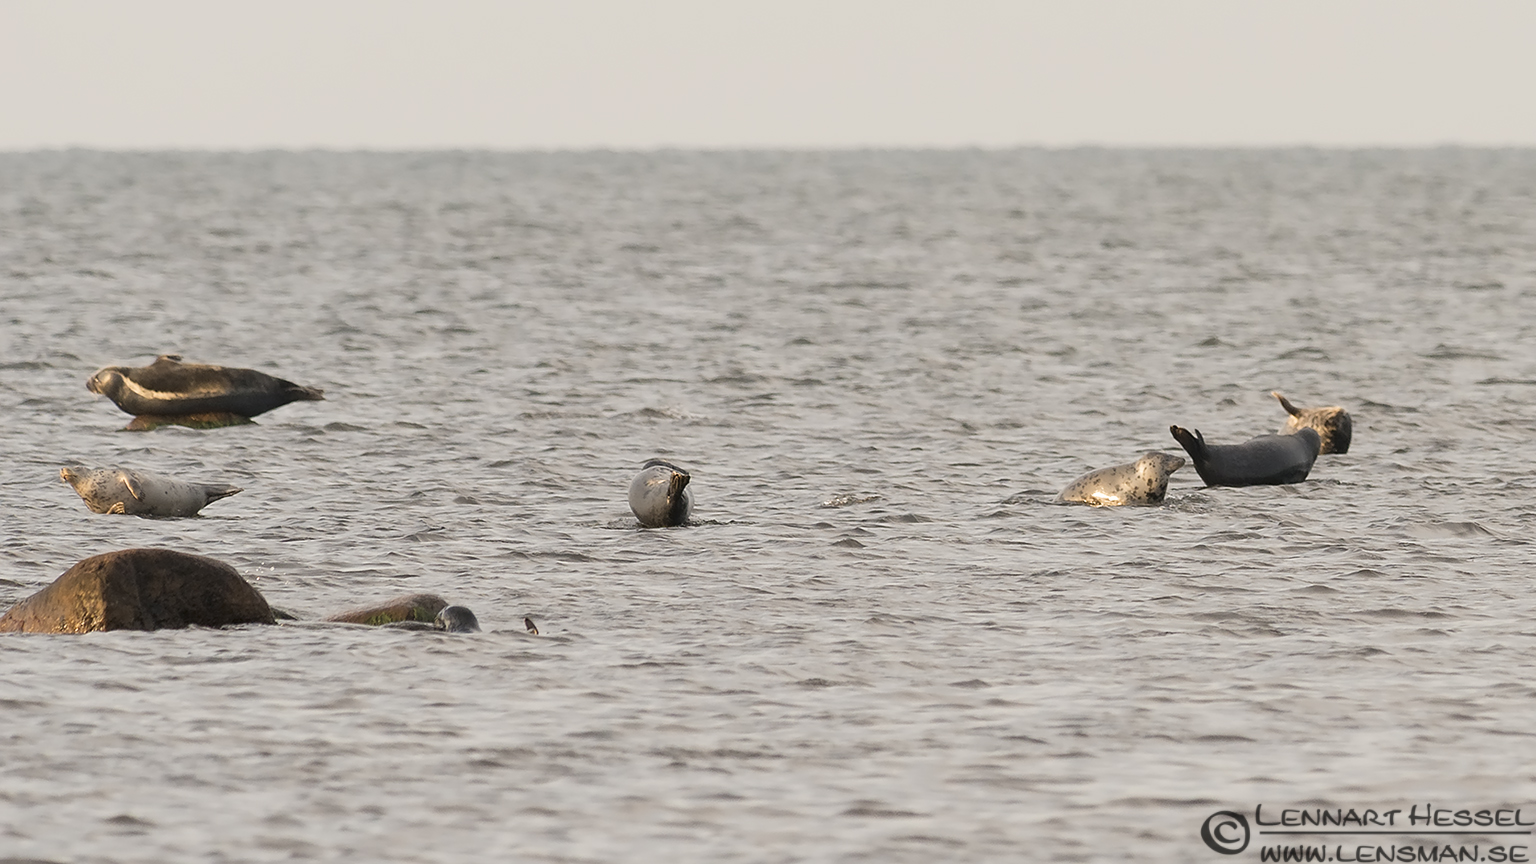 Seal colony Öland 2012